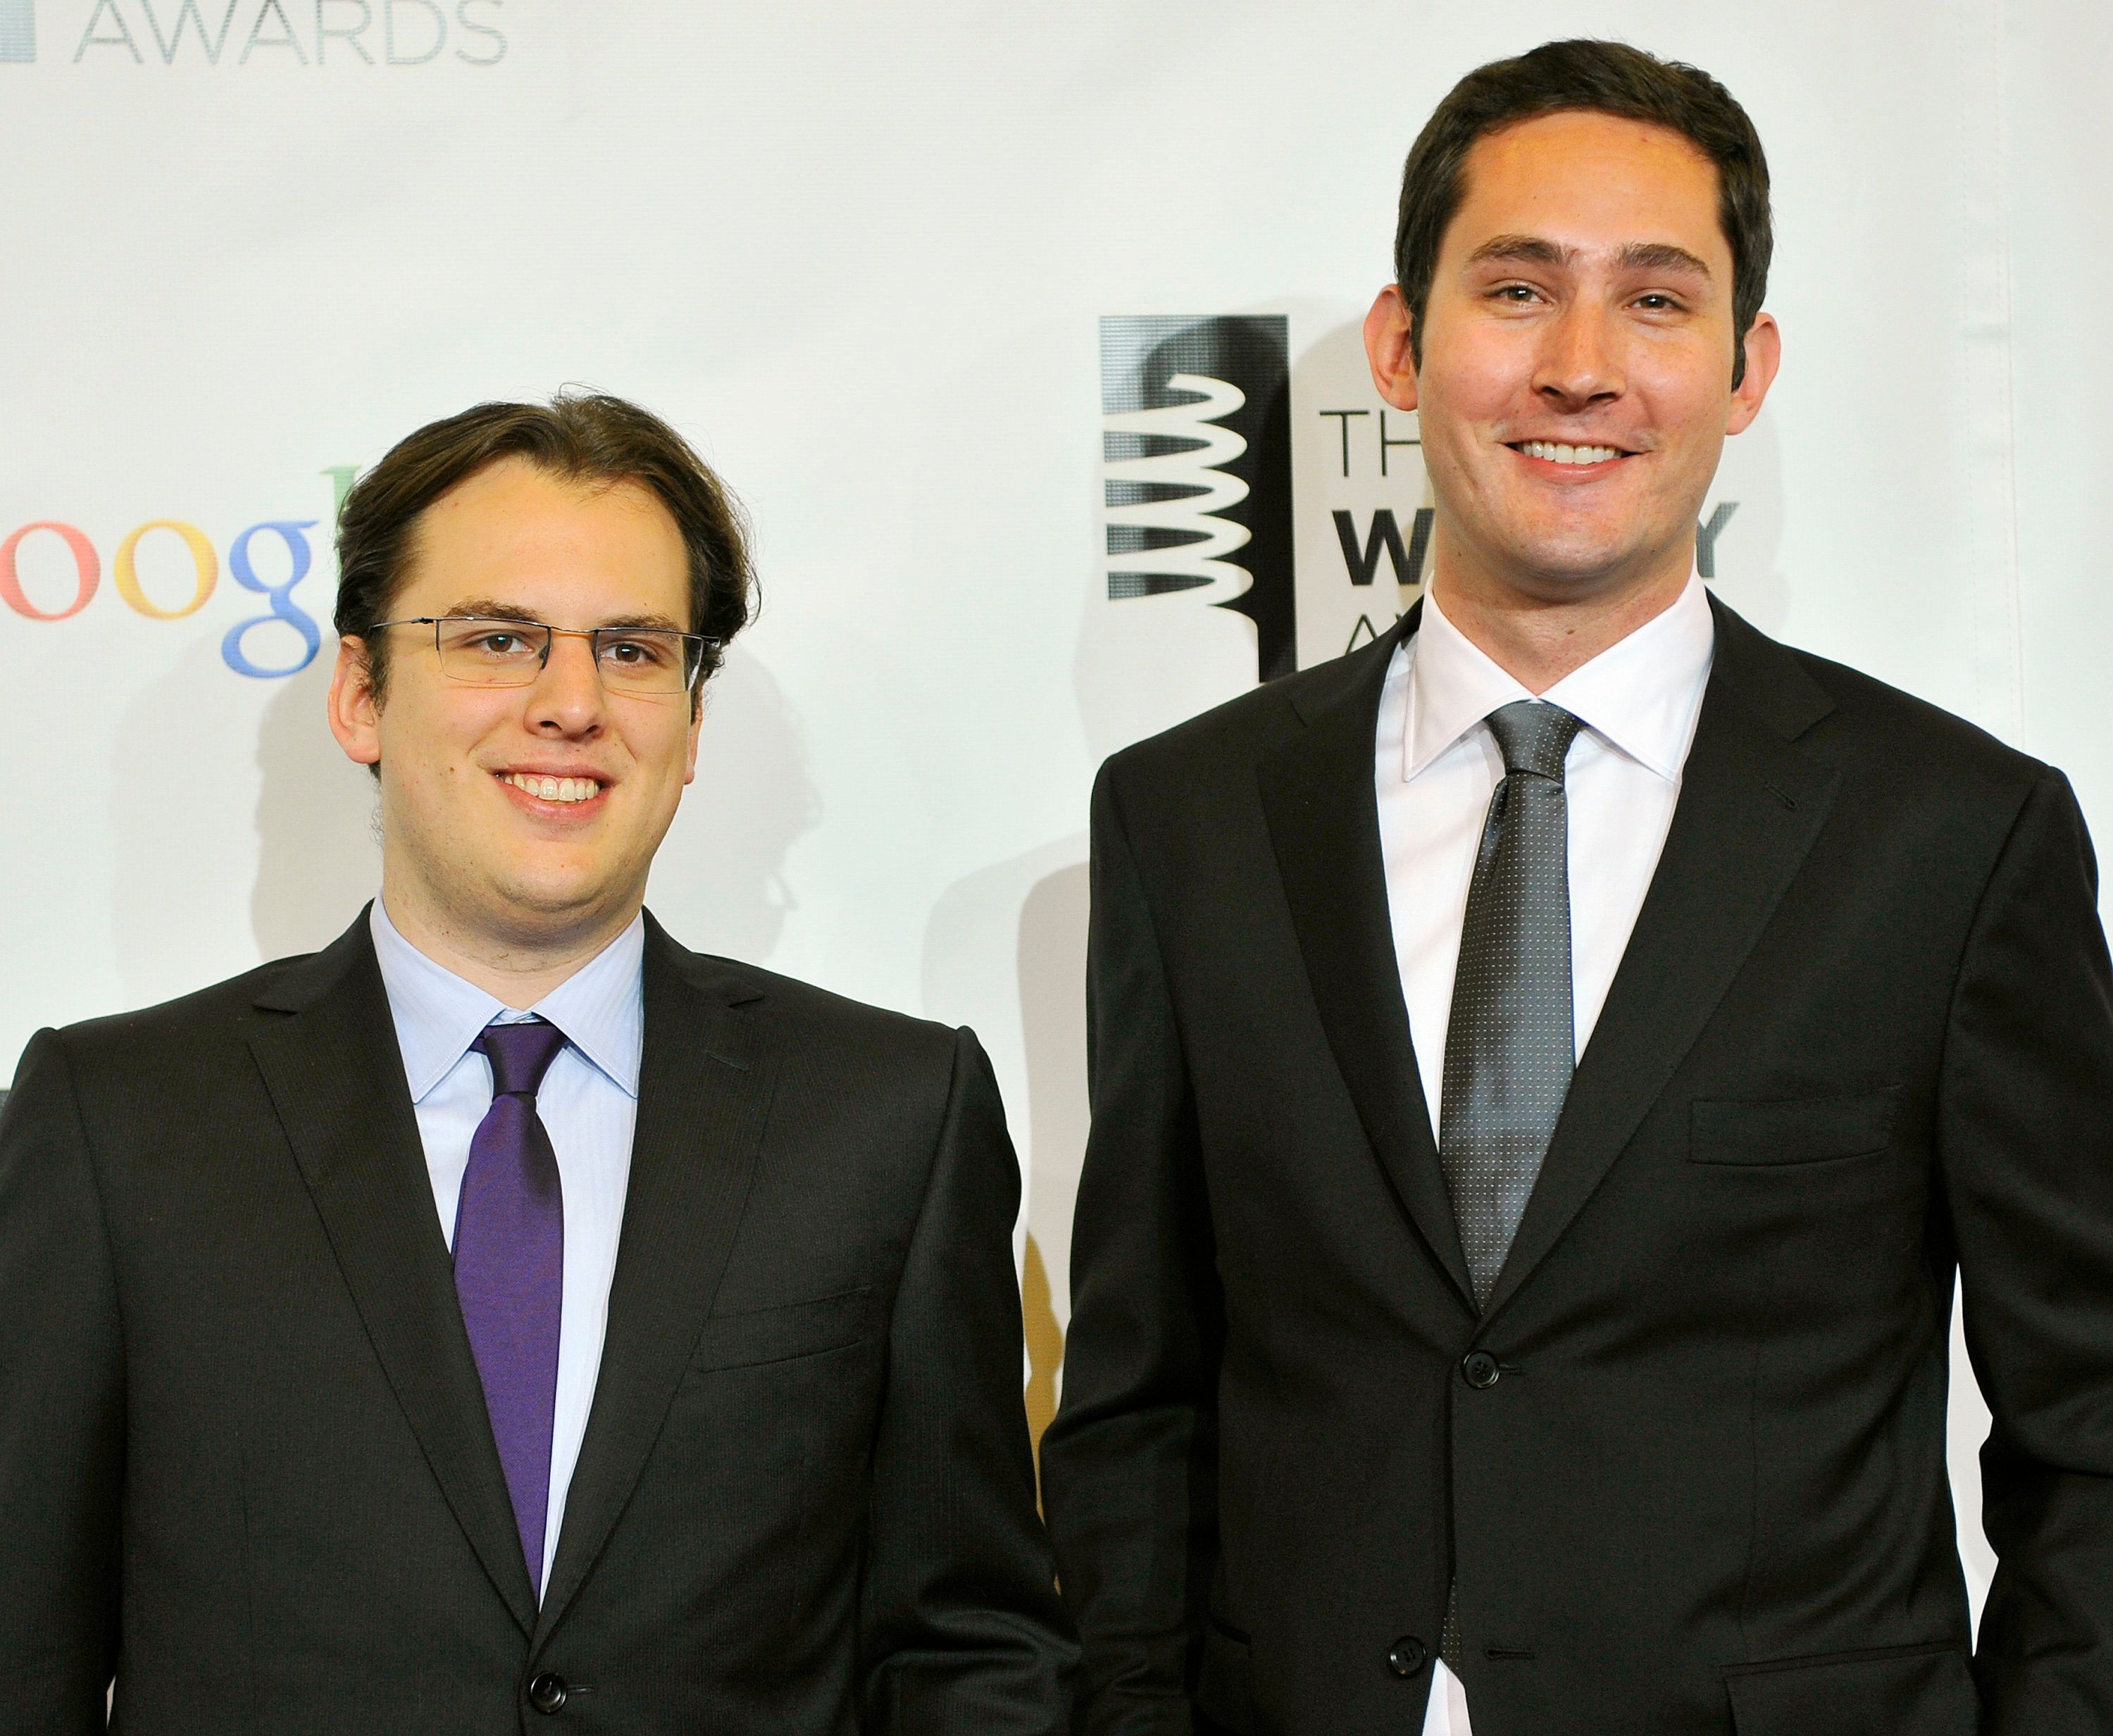 MOVING ON: Instagram Co-Founders Resign From